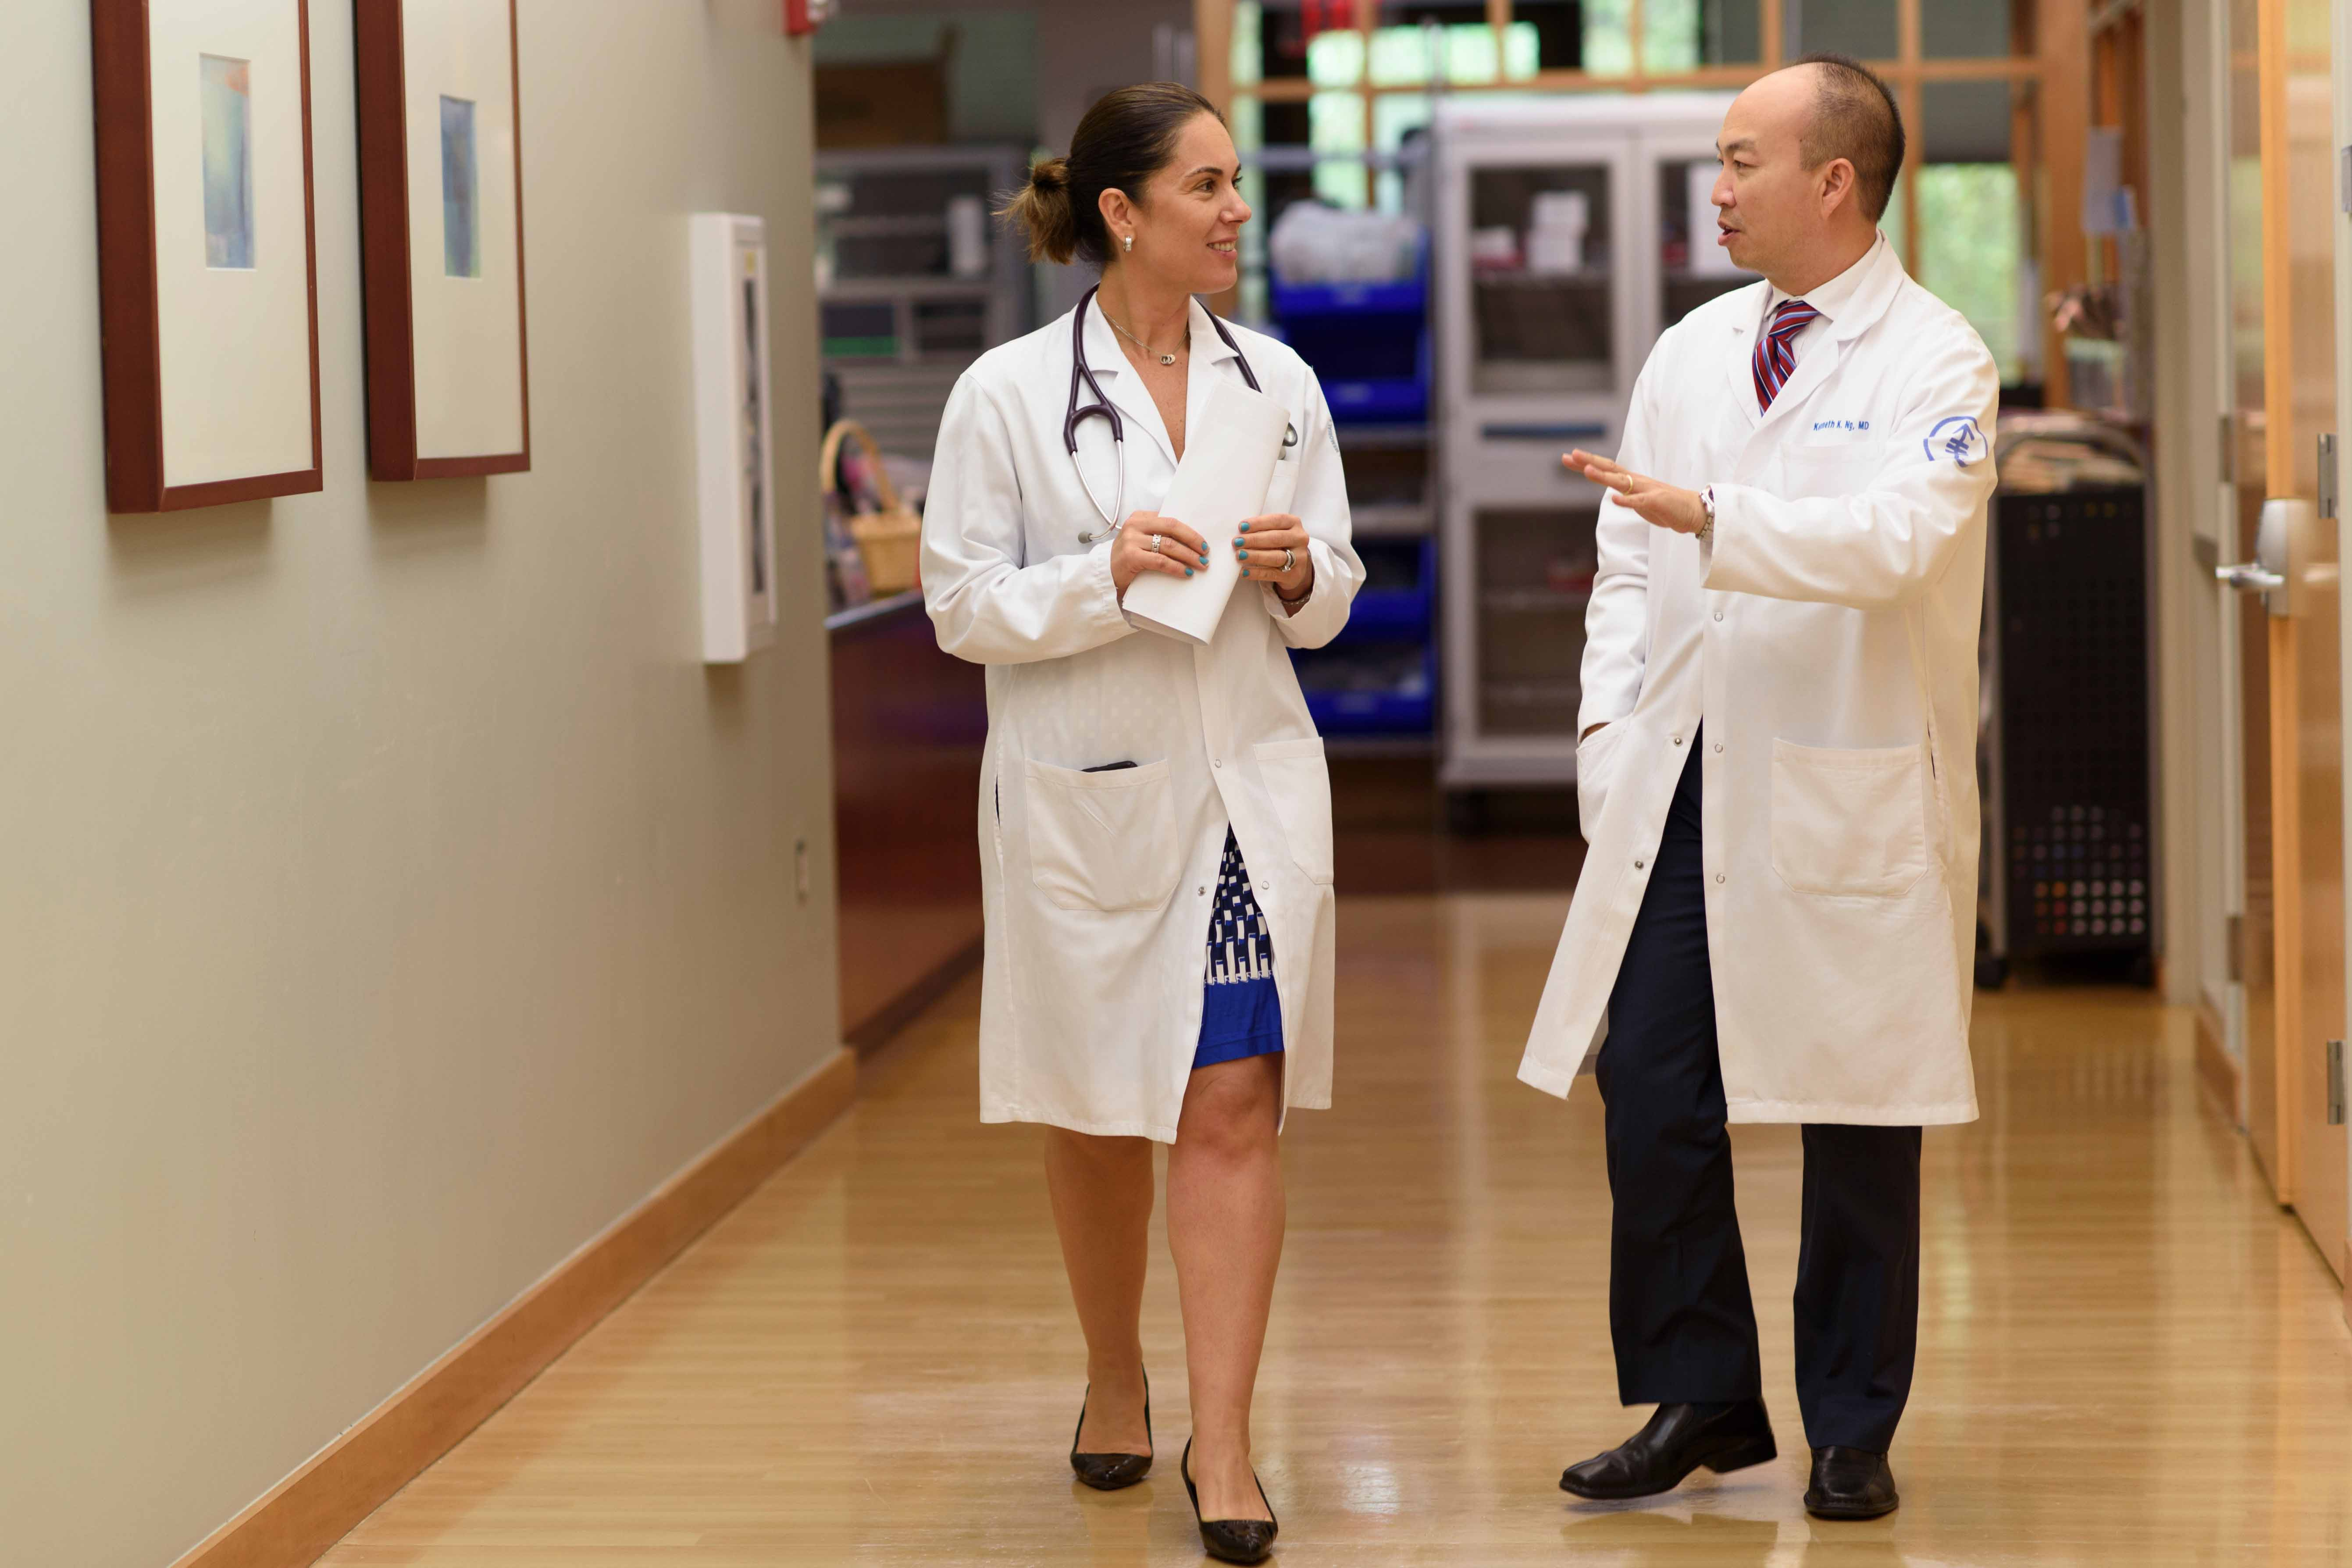 MSK medical oncologists Kenneth Ng and Zoe Goldberg